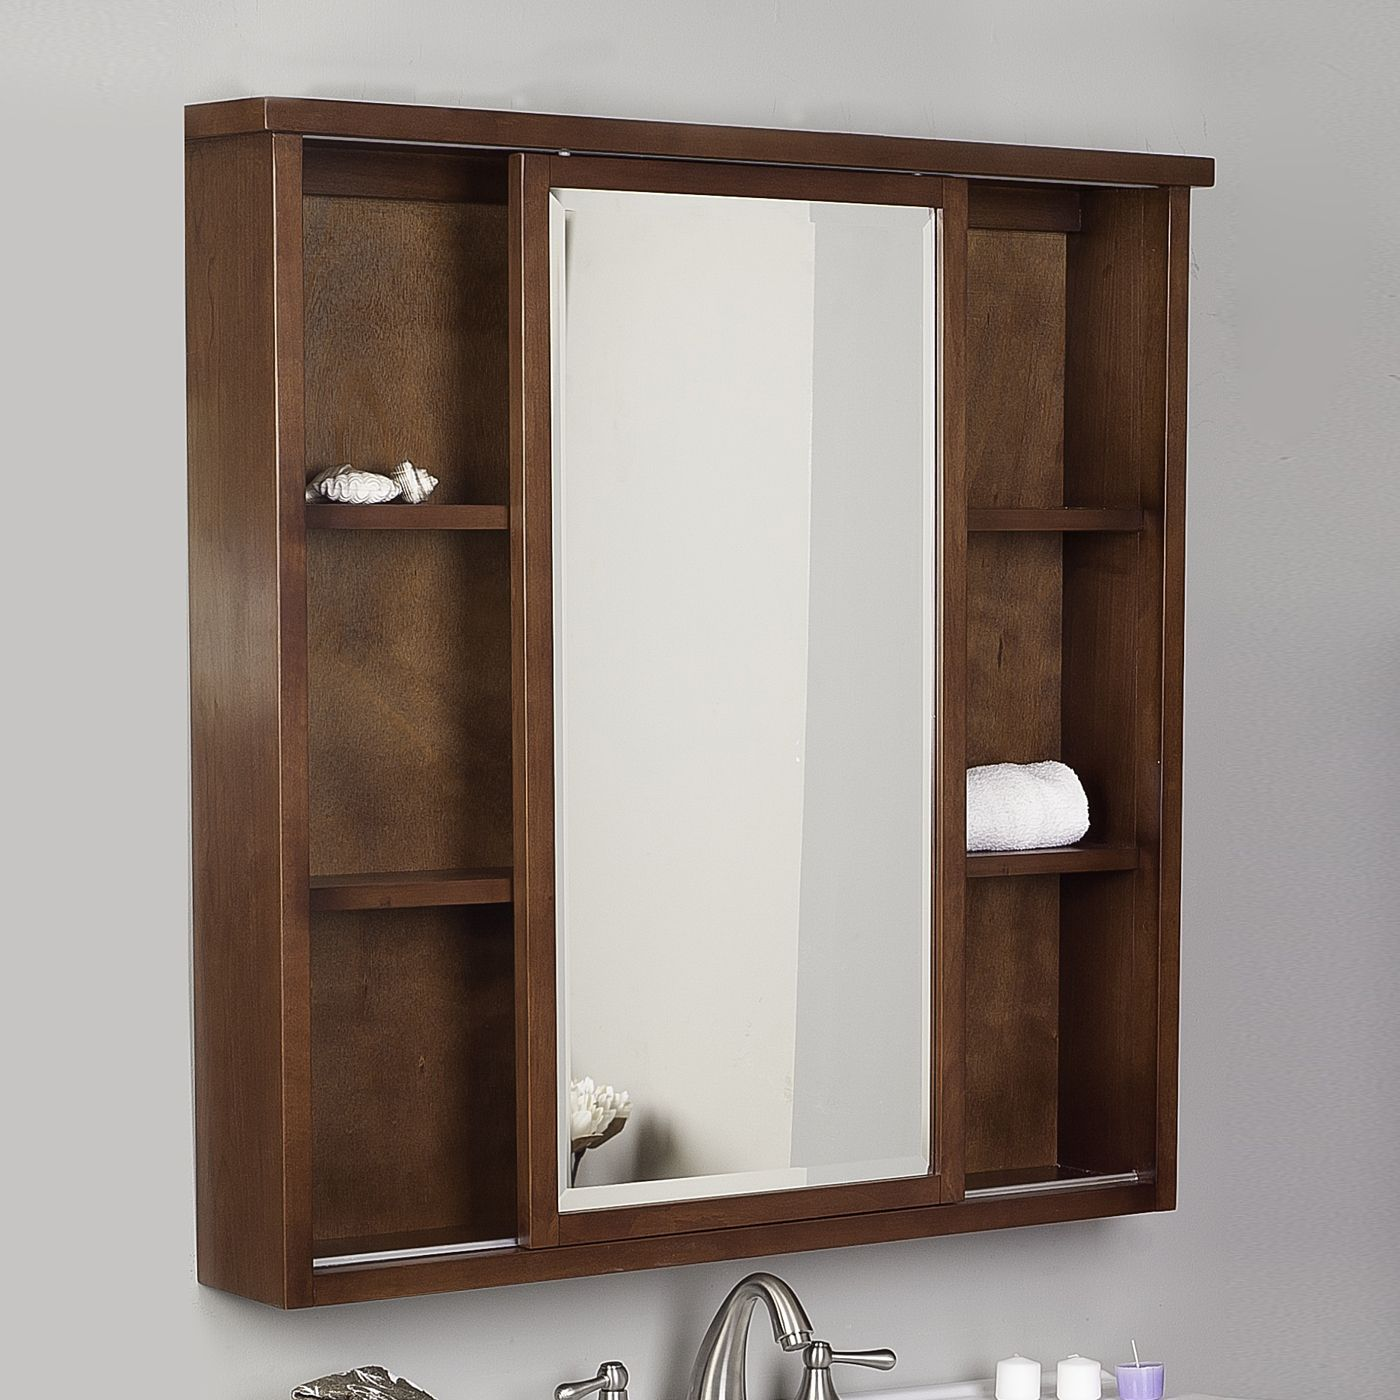 How to Hang Bathroom Medicine Cabinets on Wall - http://www ...